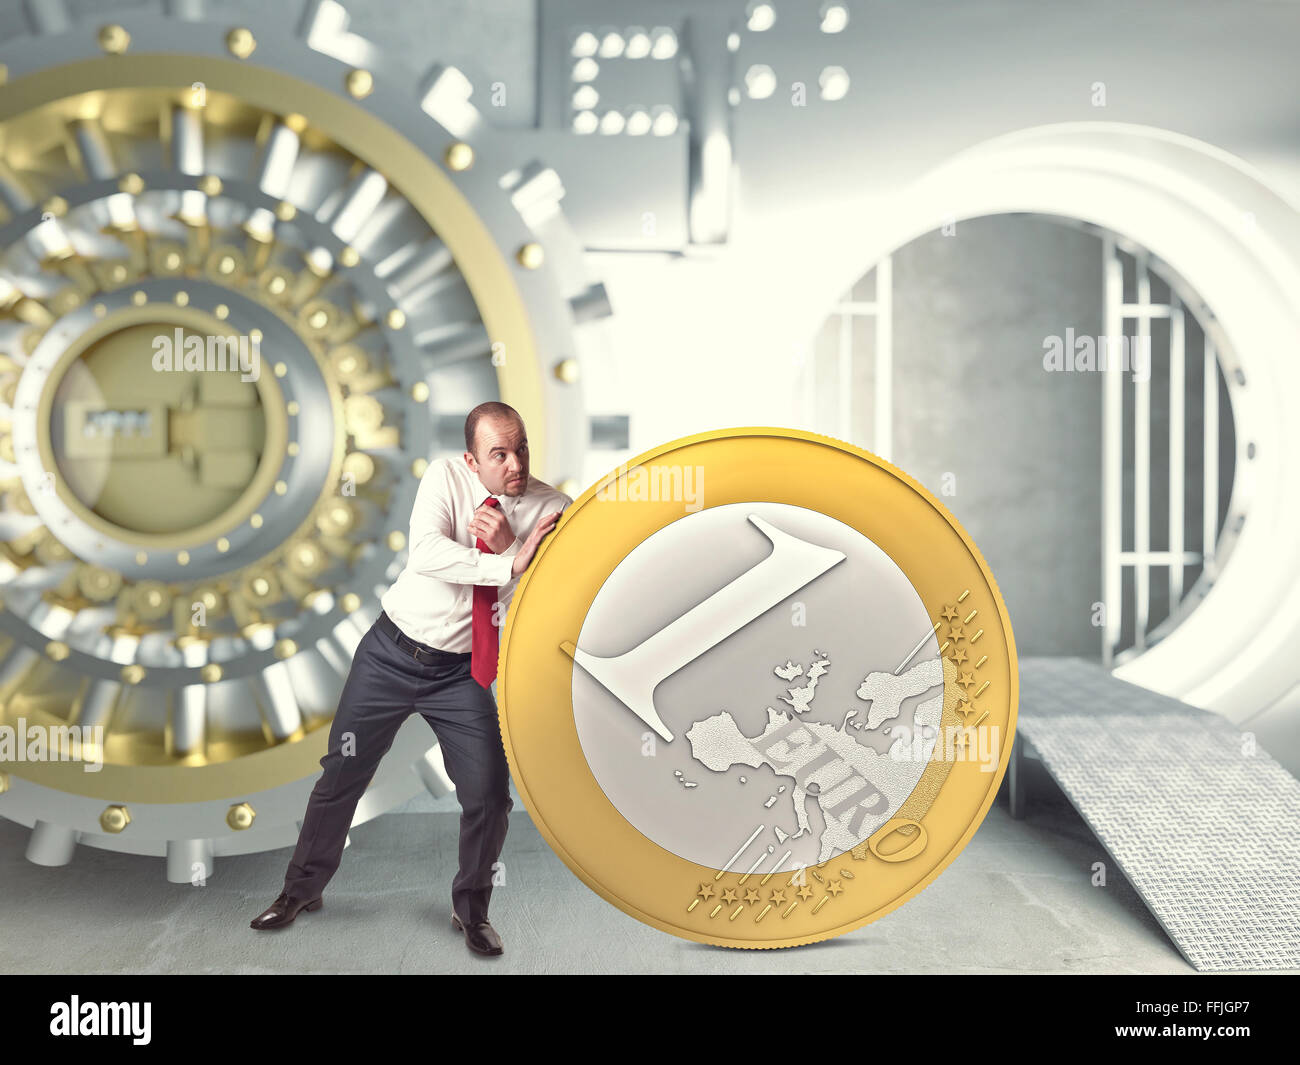 businessman push huge euro coin in bank vault - Stock Image